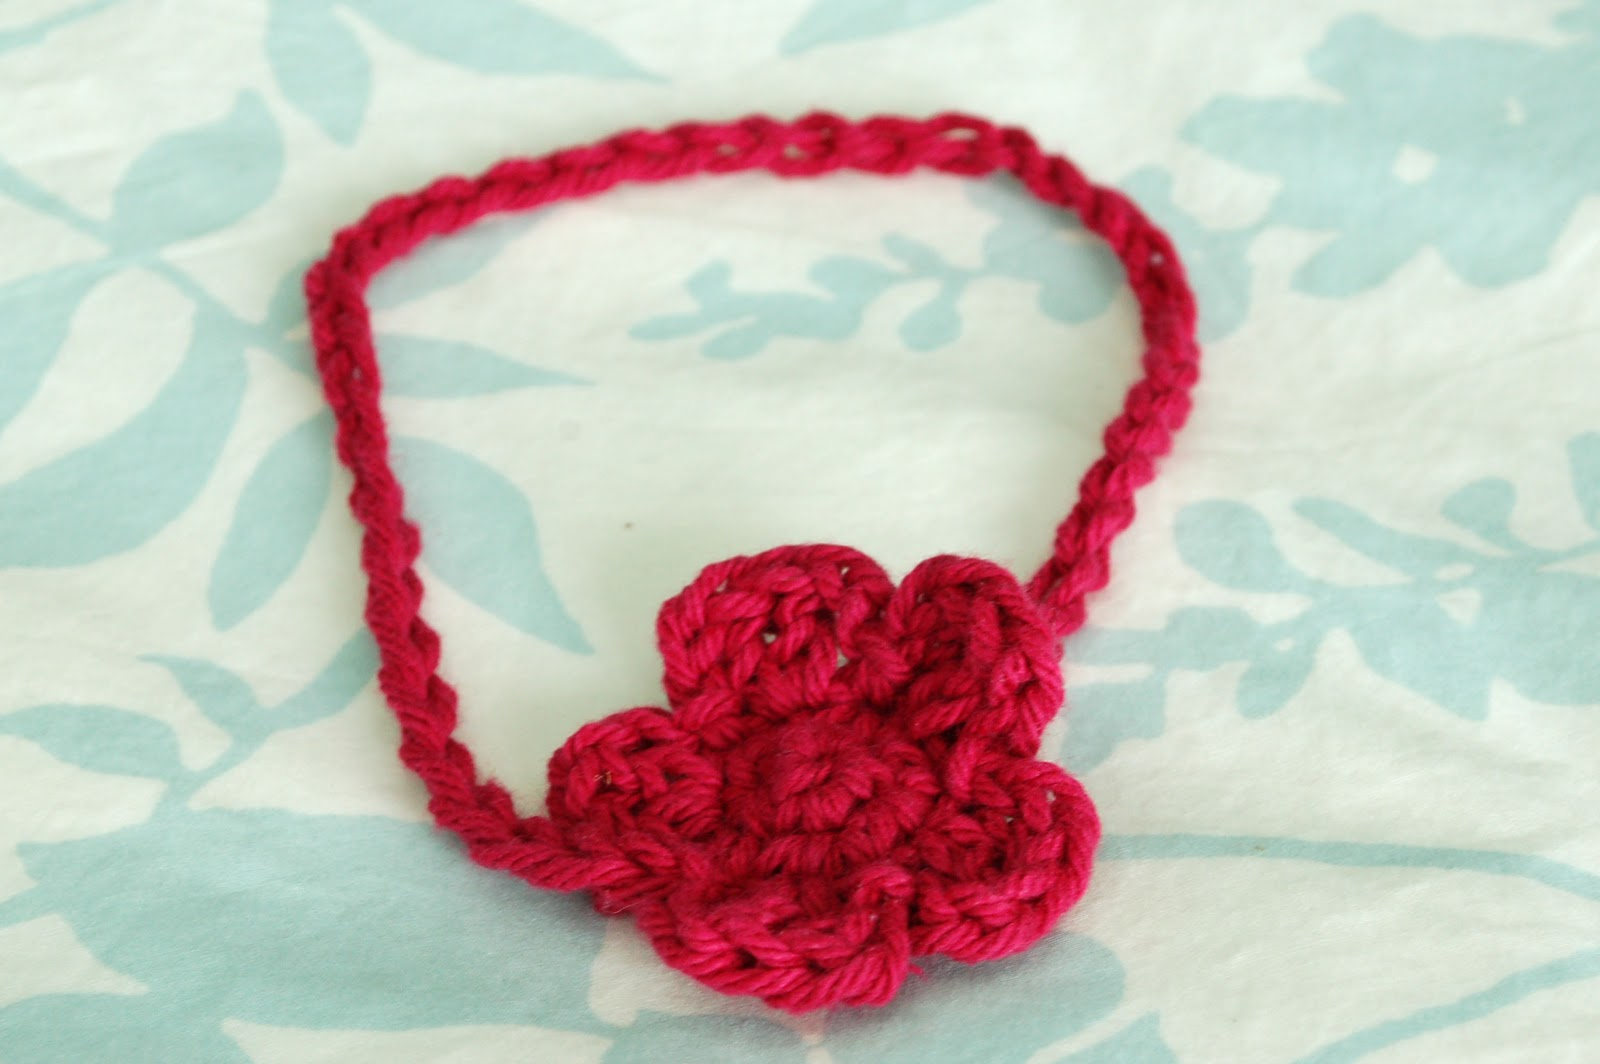 Crochet Headband Pattern For Baby With Flower : Alli Crafts: Free Pattern: Baby Headband